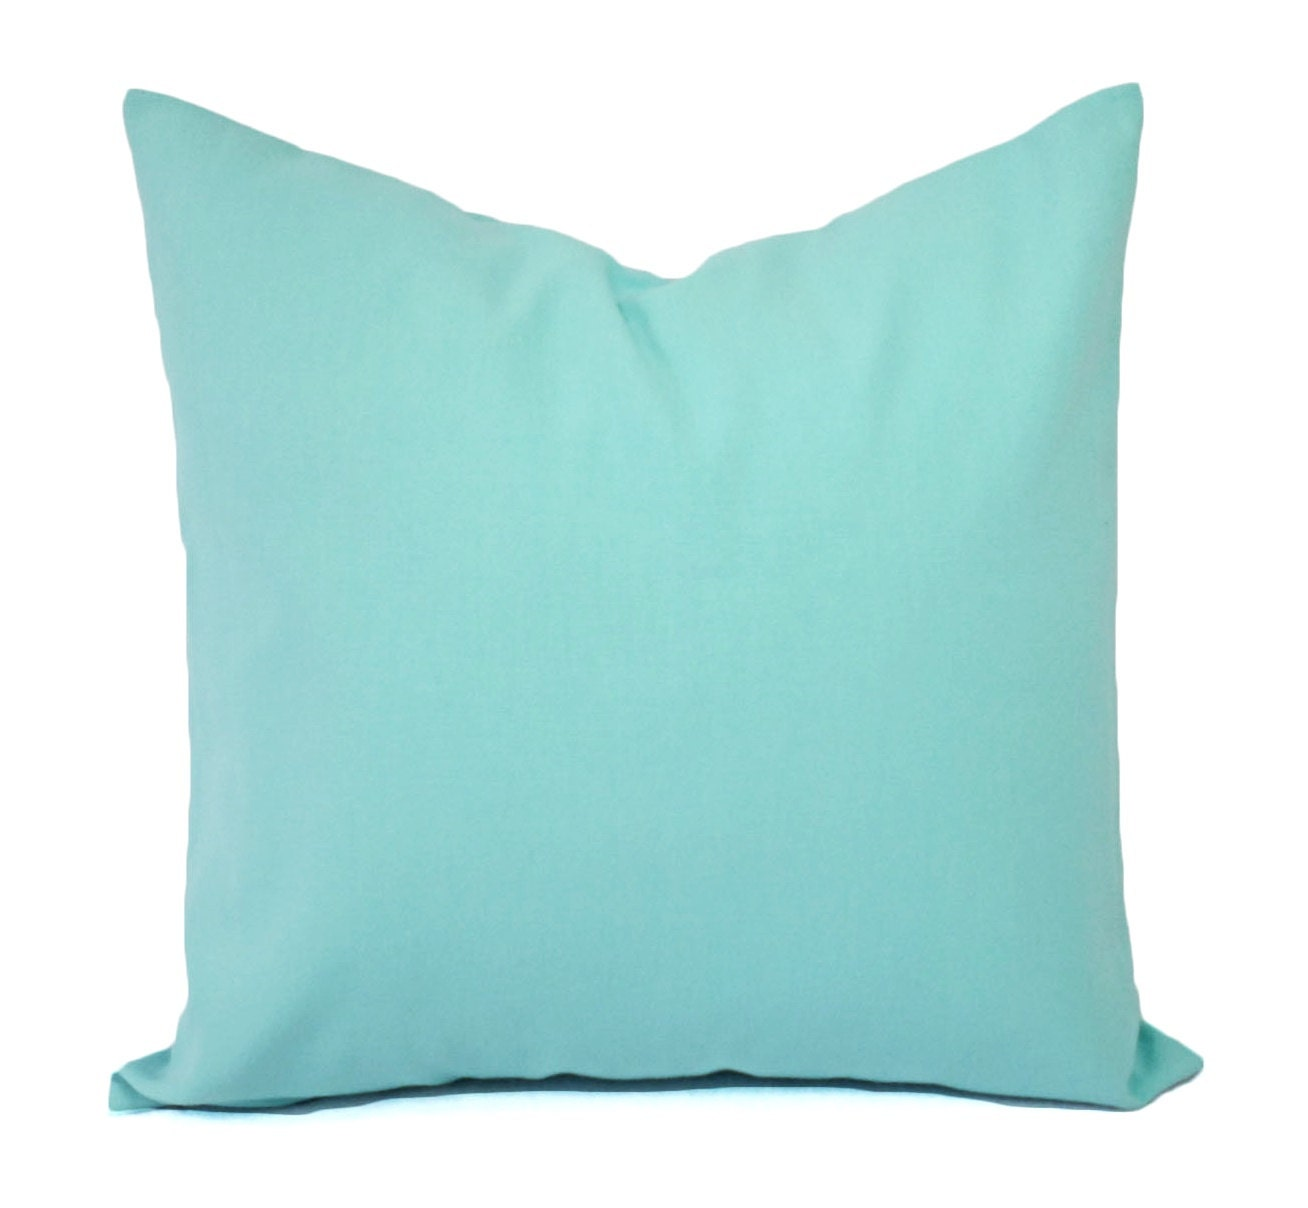 Solid Decorative Throw Pillows : Two Aqua Pillow Covers Solid Teal Throw Pillows Aqua Couch